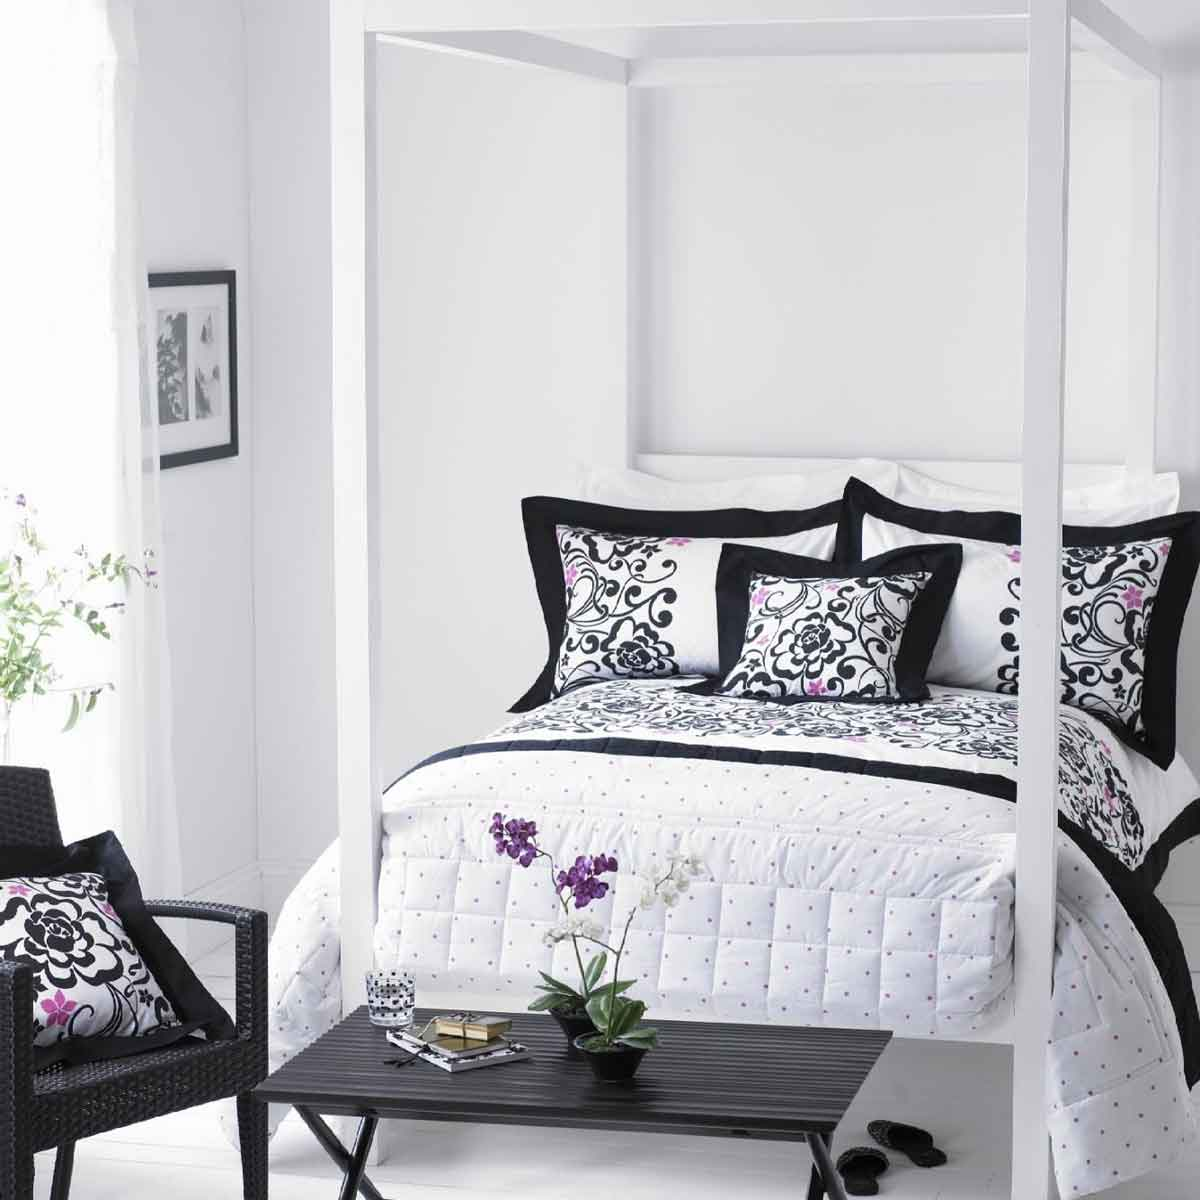 Black and white bedrooms designs home design inside - White bed design ideas ...